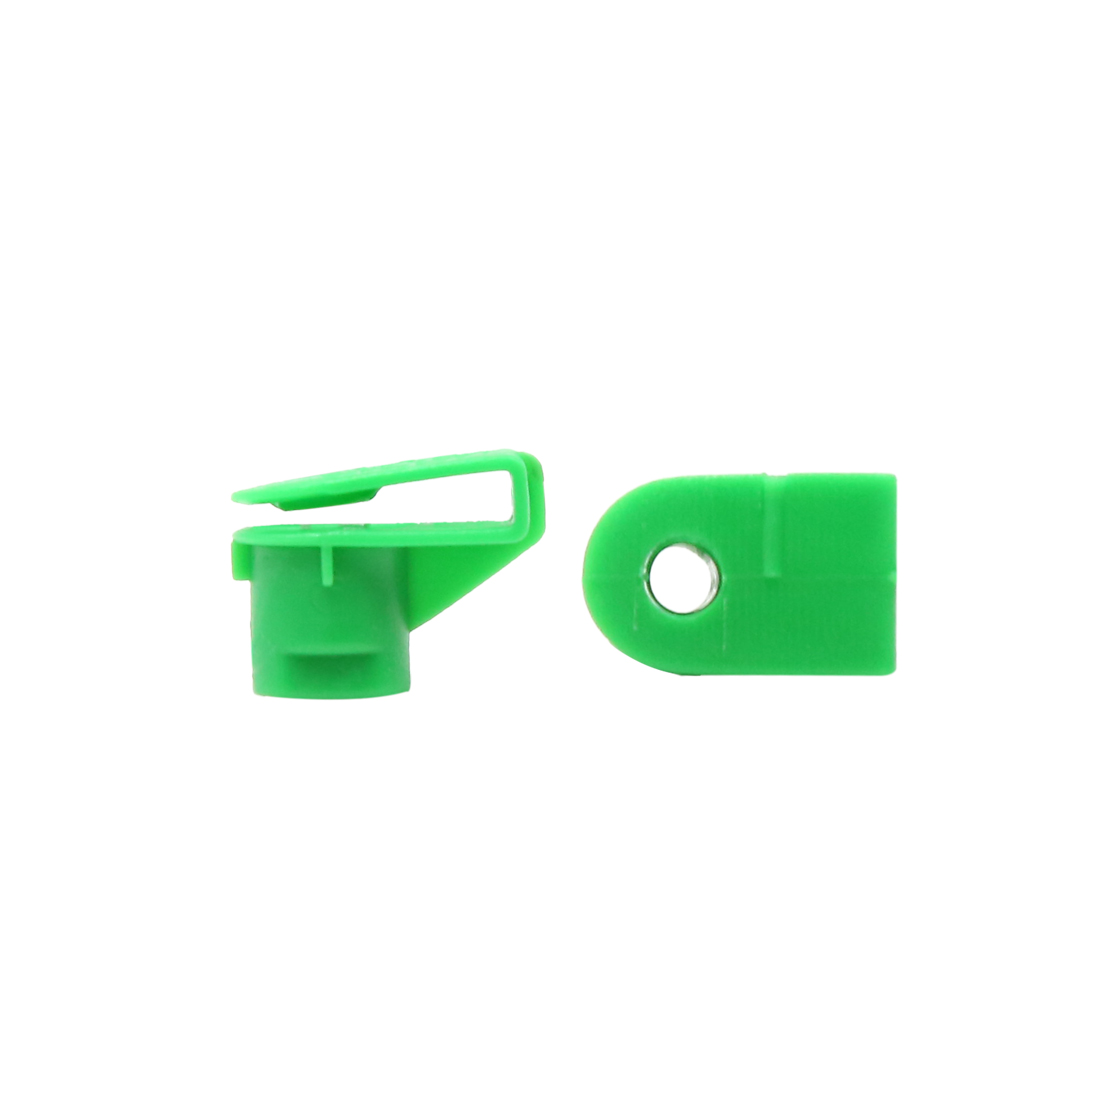 100 Pcs Green Weatherstrip Mud Flaps Plastic Rivets Clips Fasteners for Car Auto